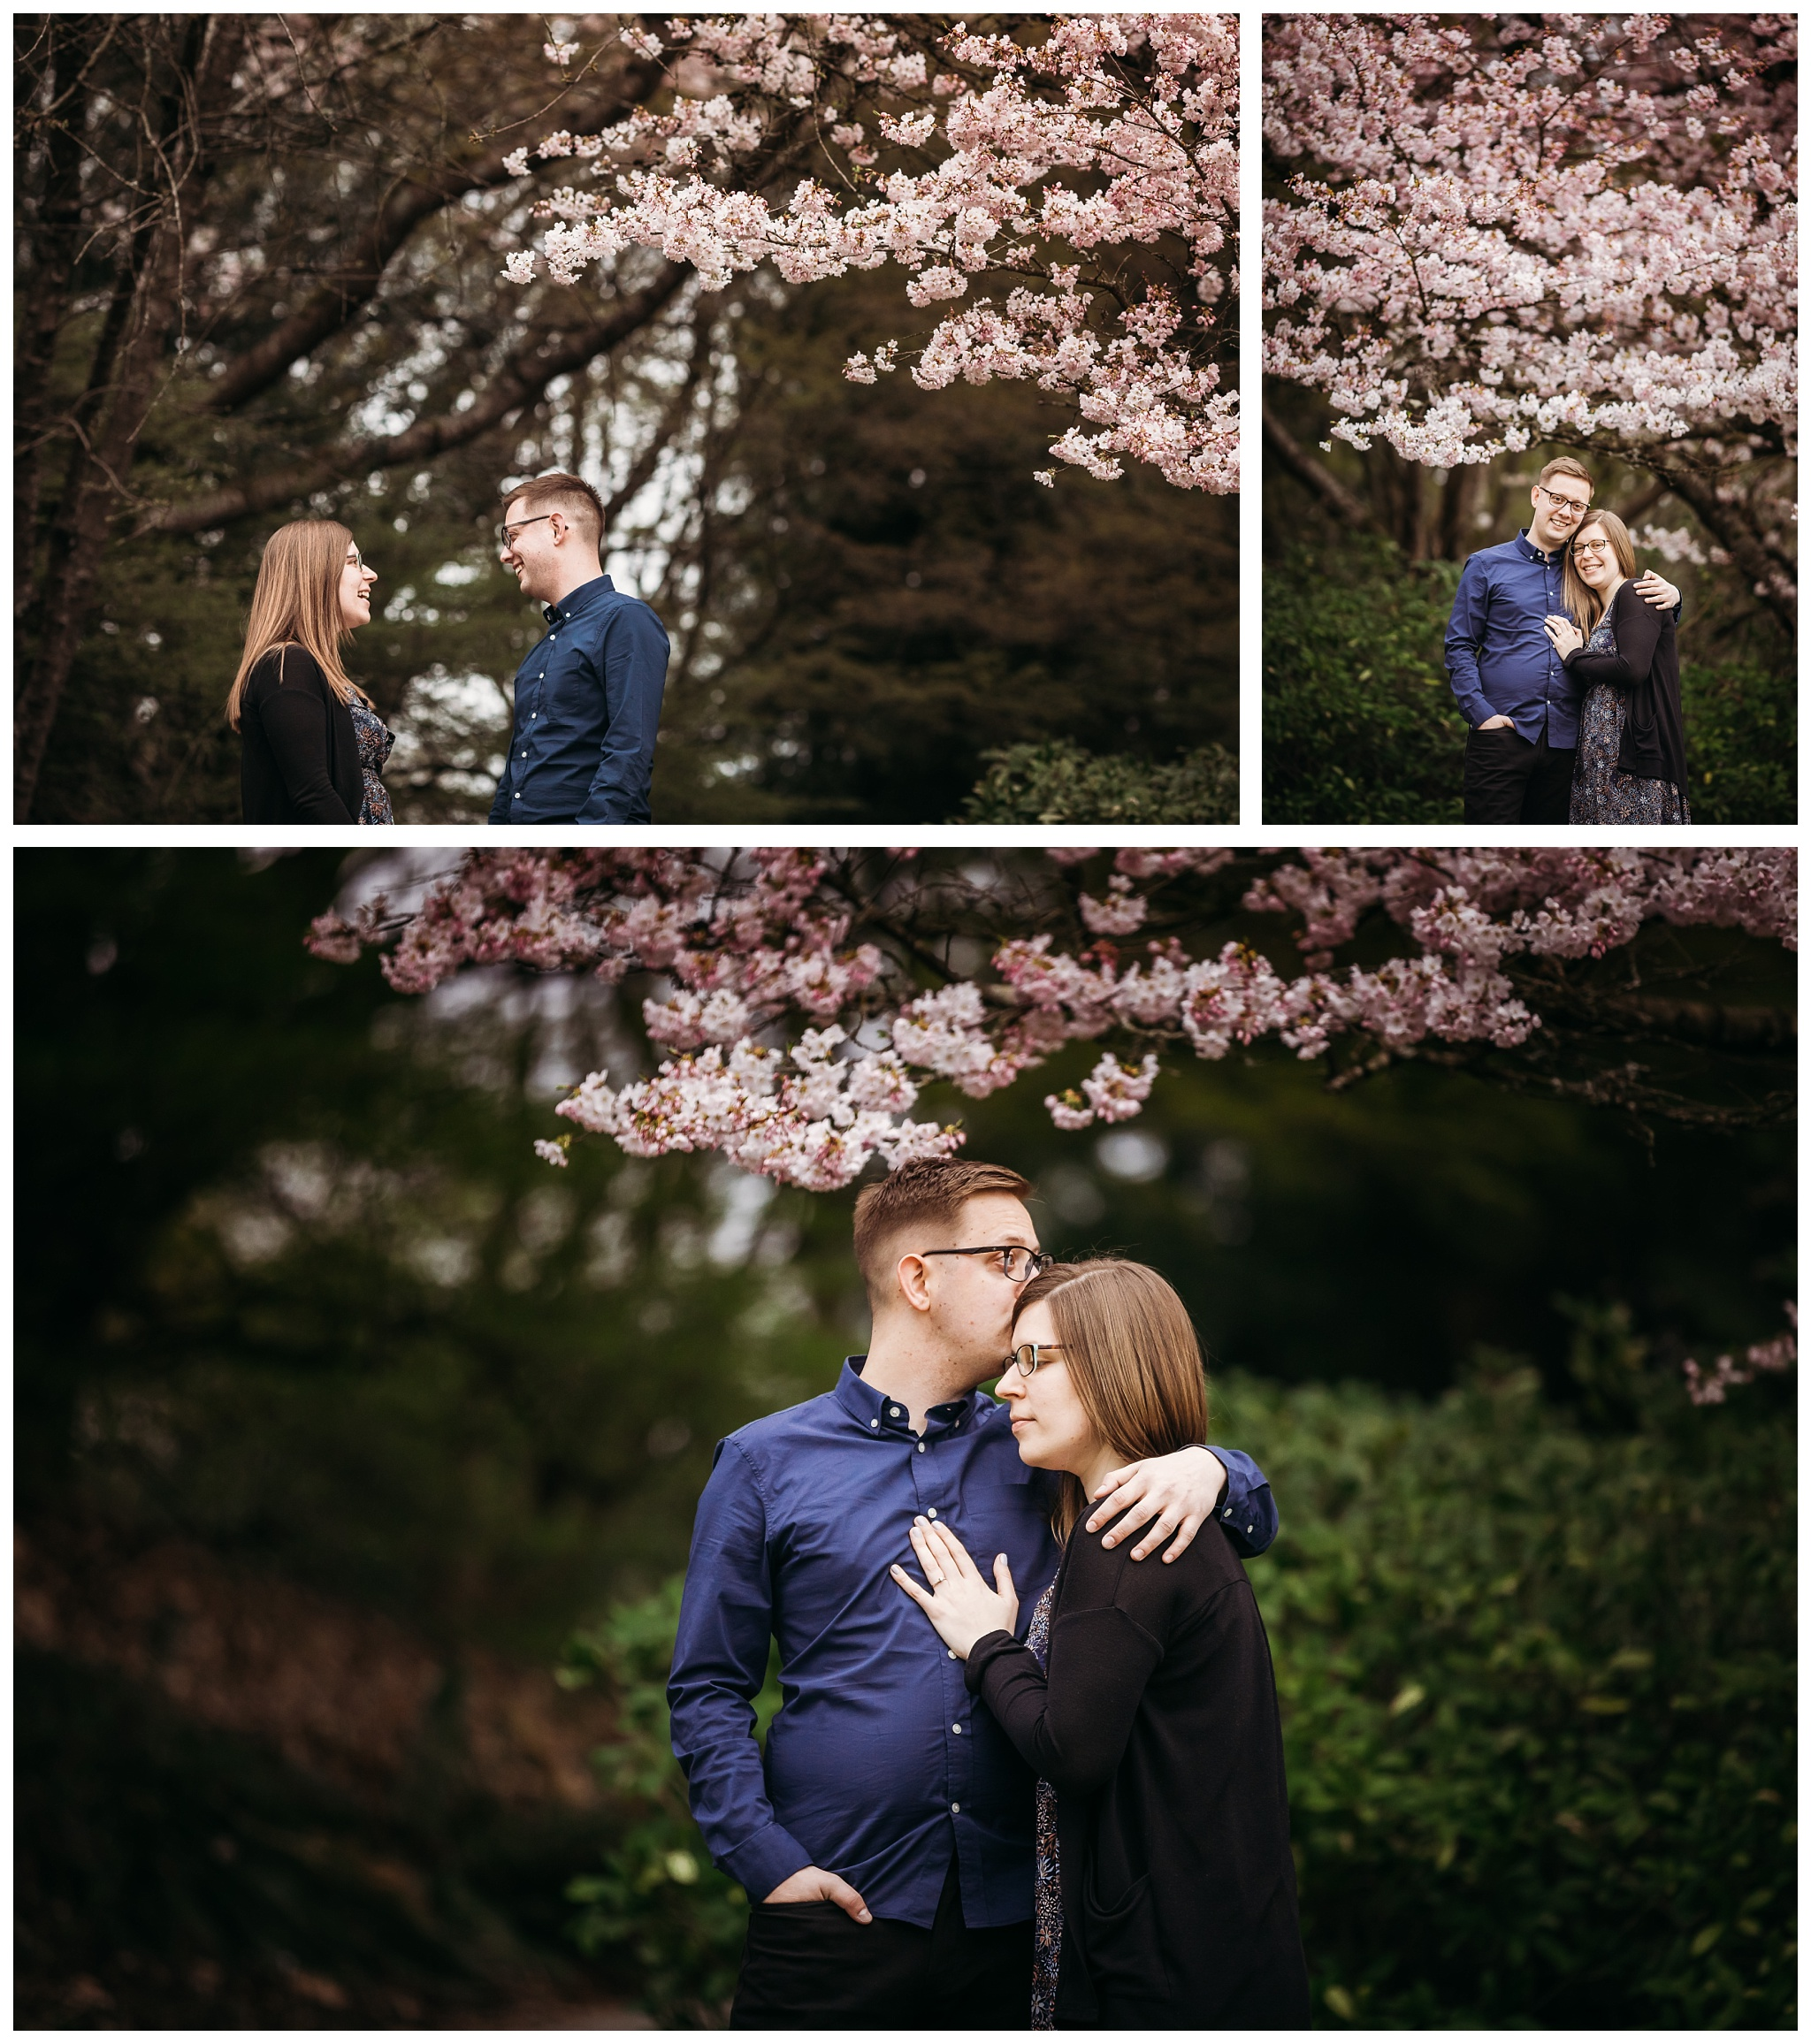 Queen Elizabeth Park Spring Engagement Photography Cherry Blossom Photos Couple Romantic_0001.jpg